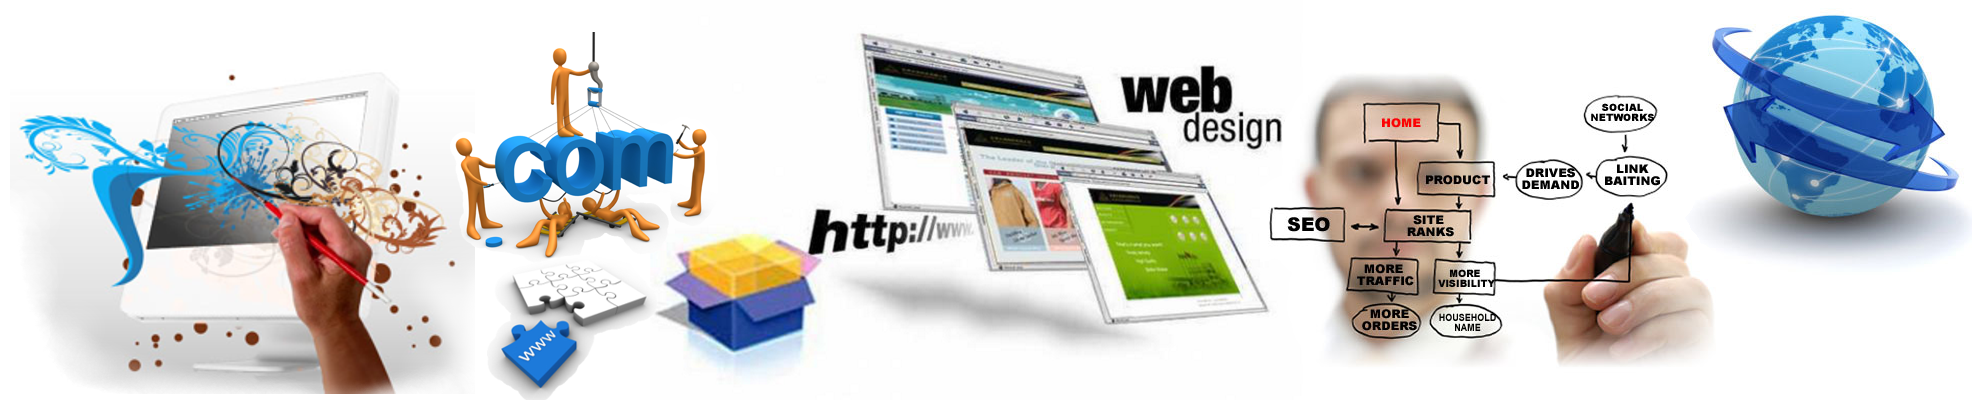 Best Website Designing Company In Delhi Ncr Web Design Services